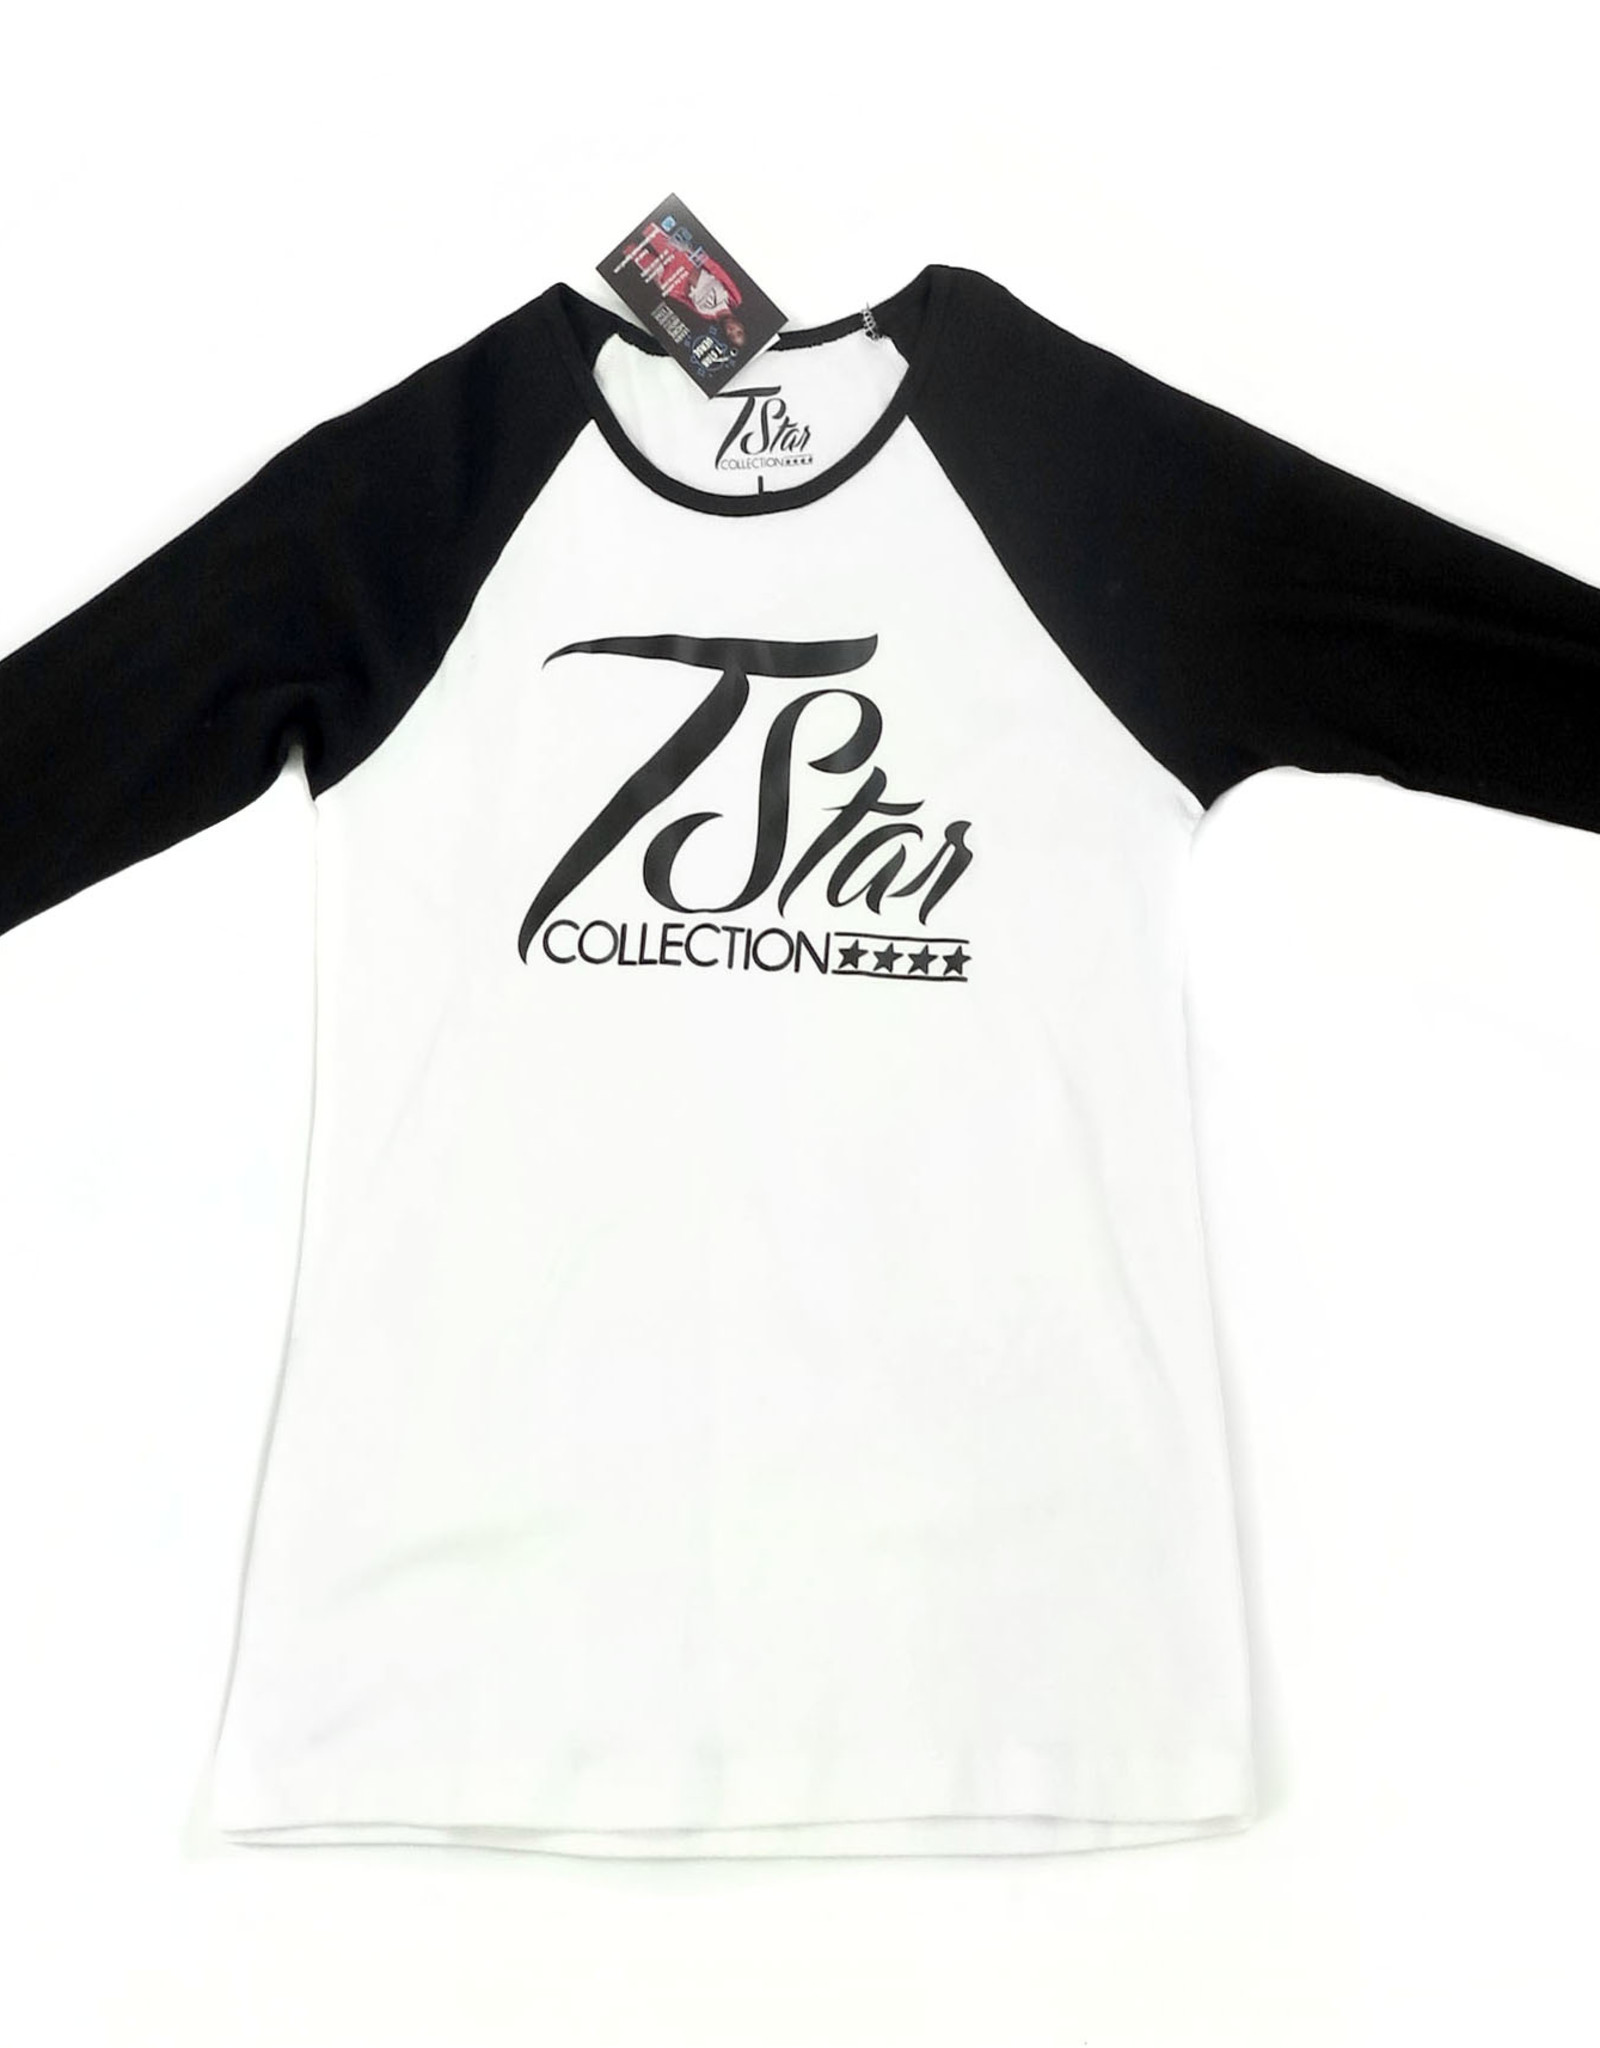 T Star Collection Baseball tshirt by T Star Collection, Manifest Song Performer T Star Verse